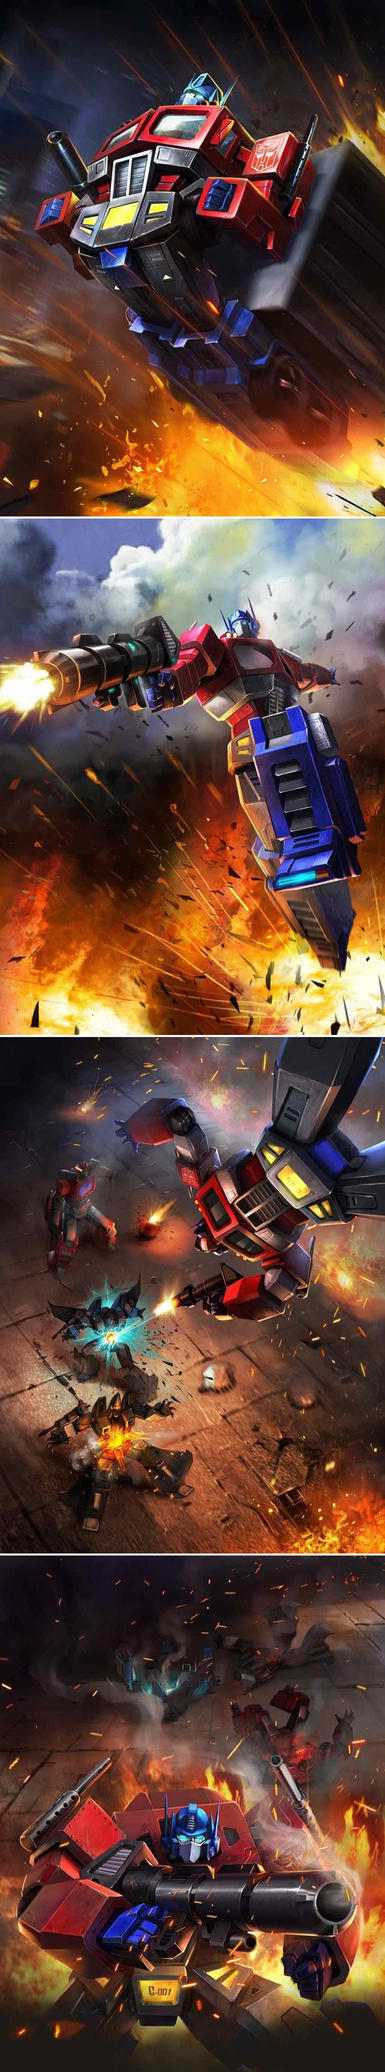 TRANSFORMERS LEGENDS Optimus Prime by manbu1977